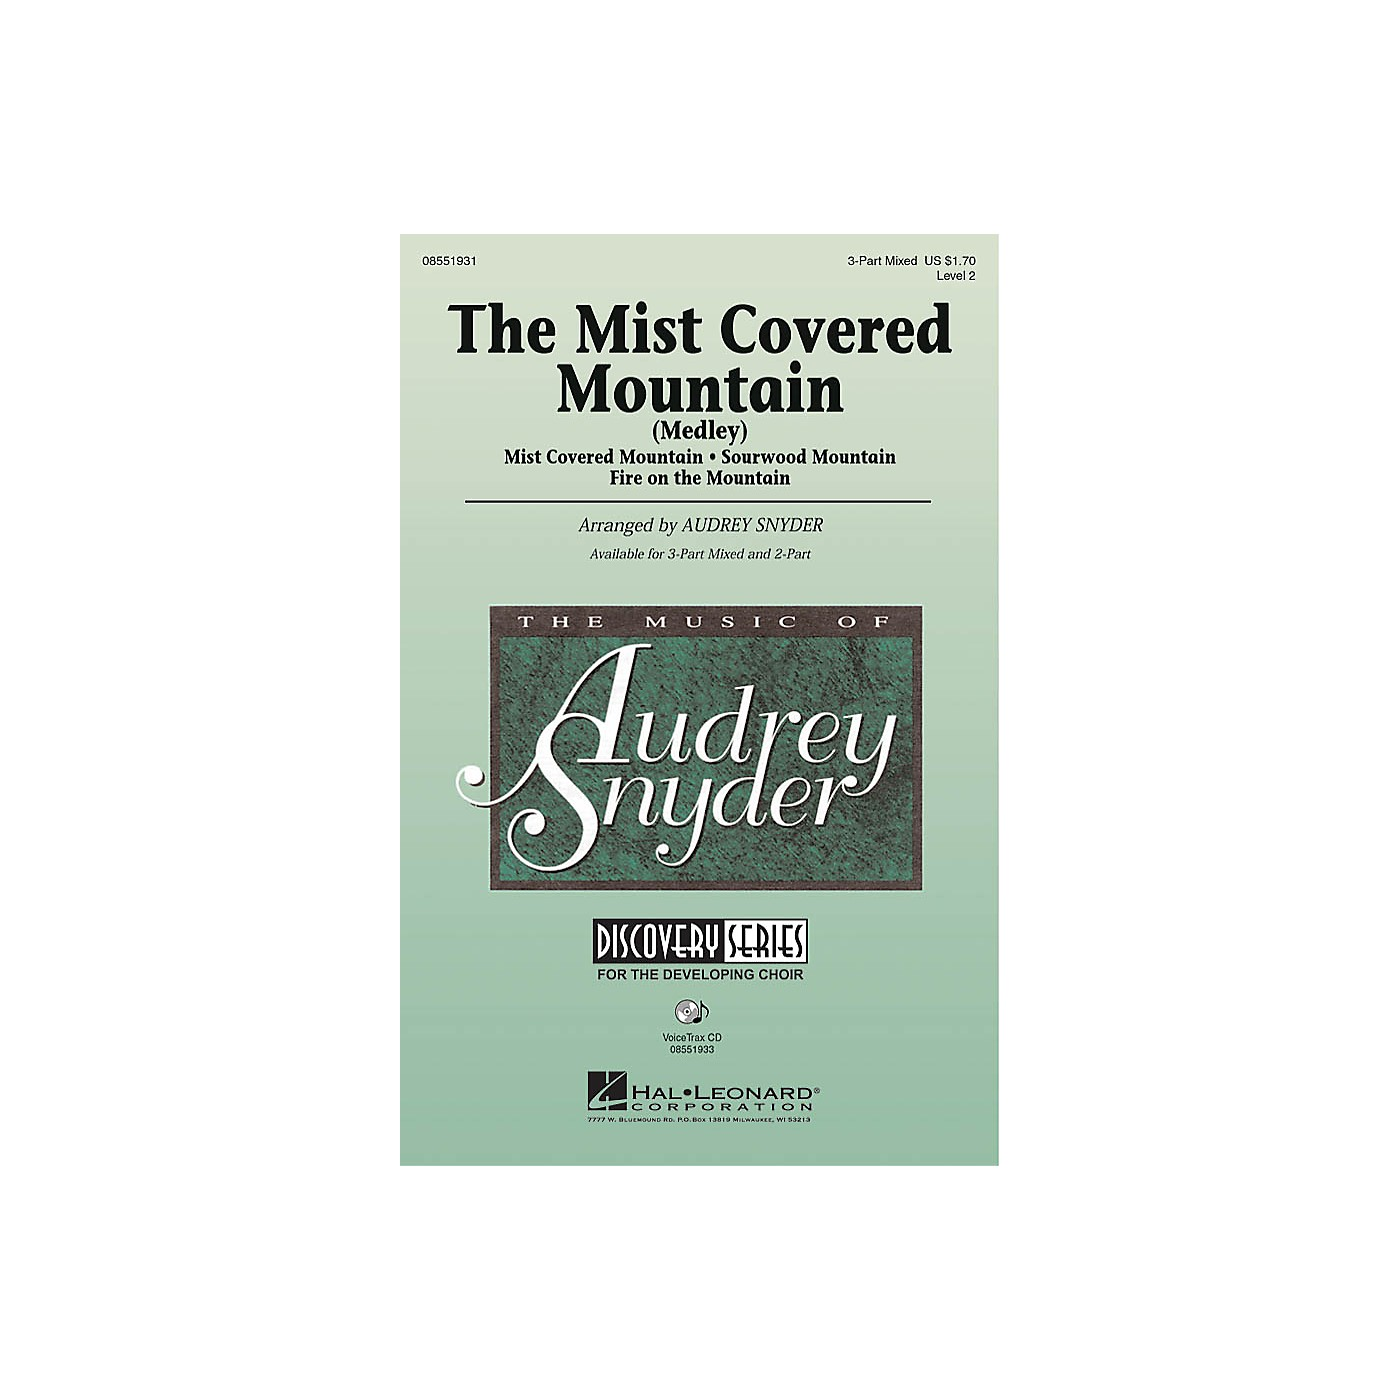 Hal Leonard The Mist Covered Mountain (Medley) 2-Part Arranged by Audrey Snyder thumbnail